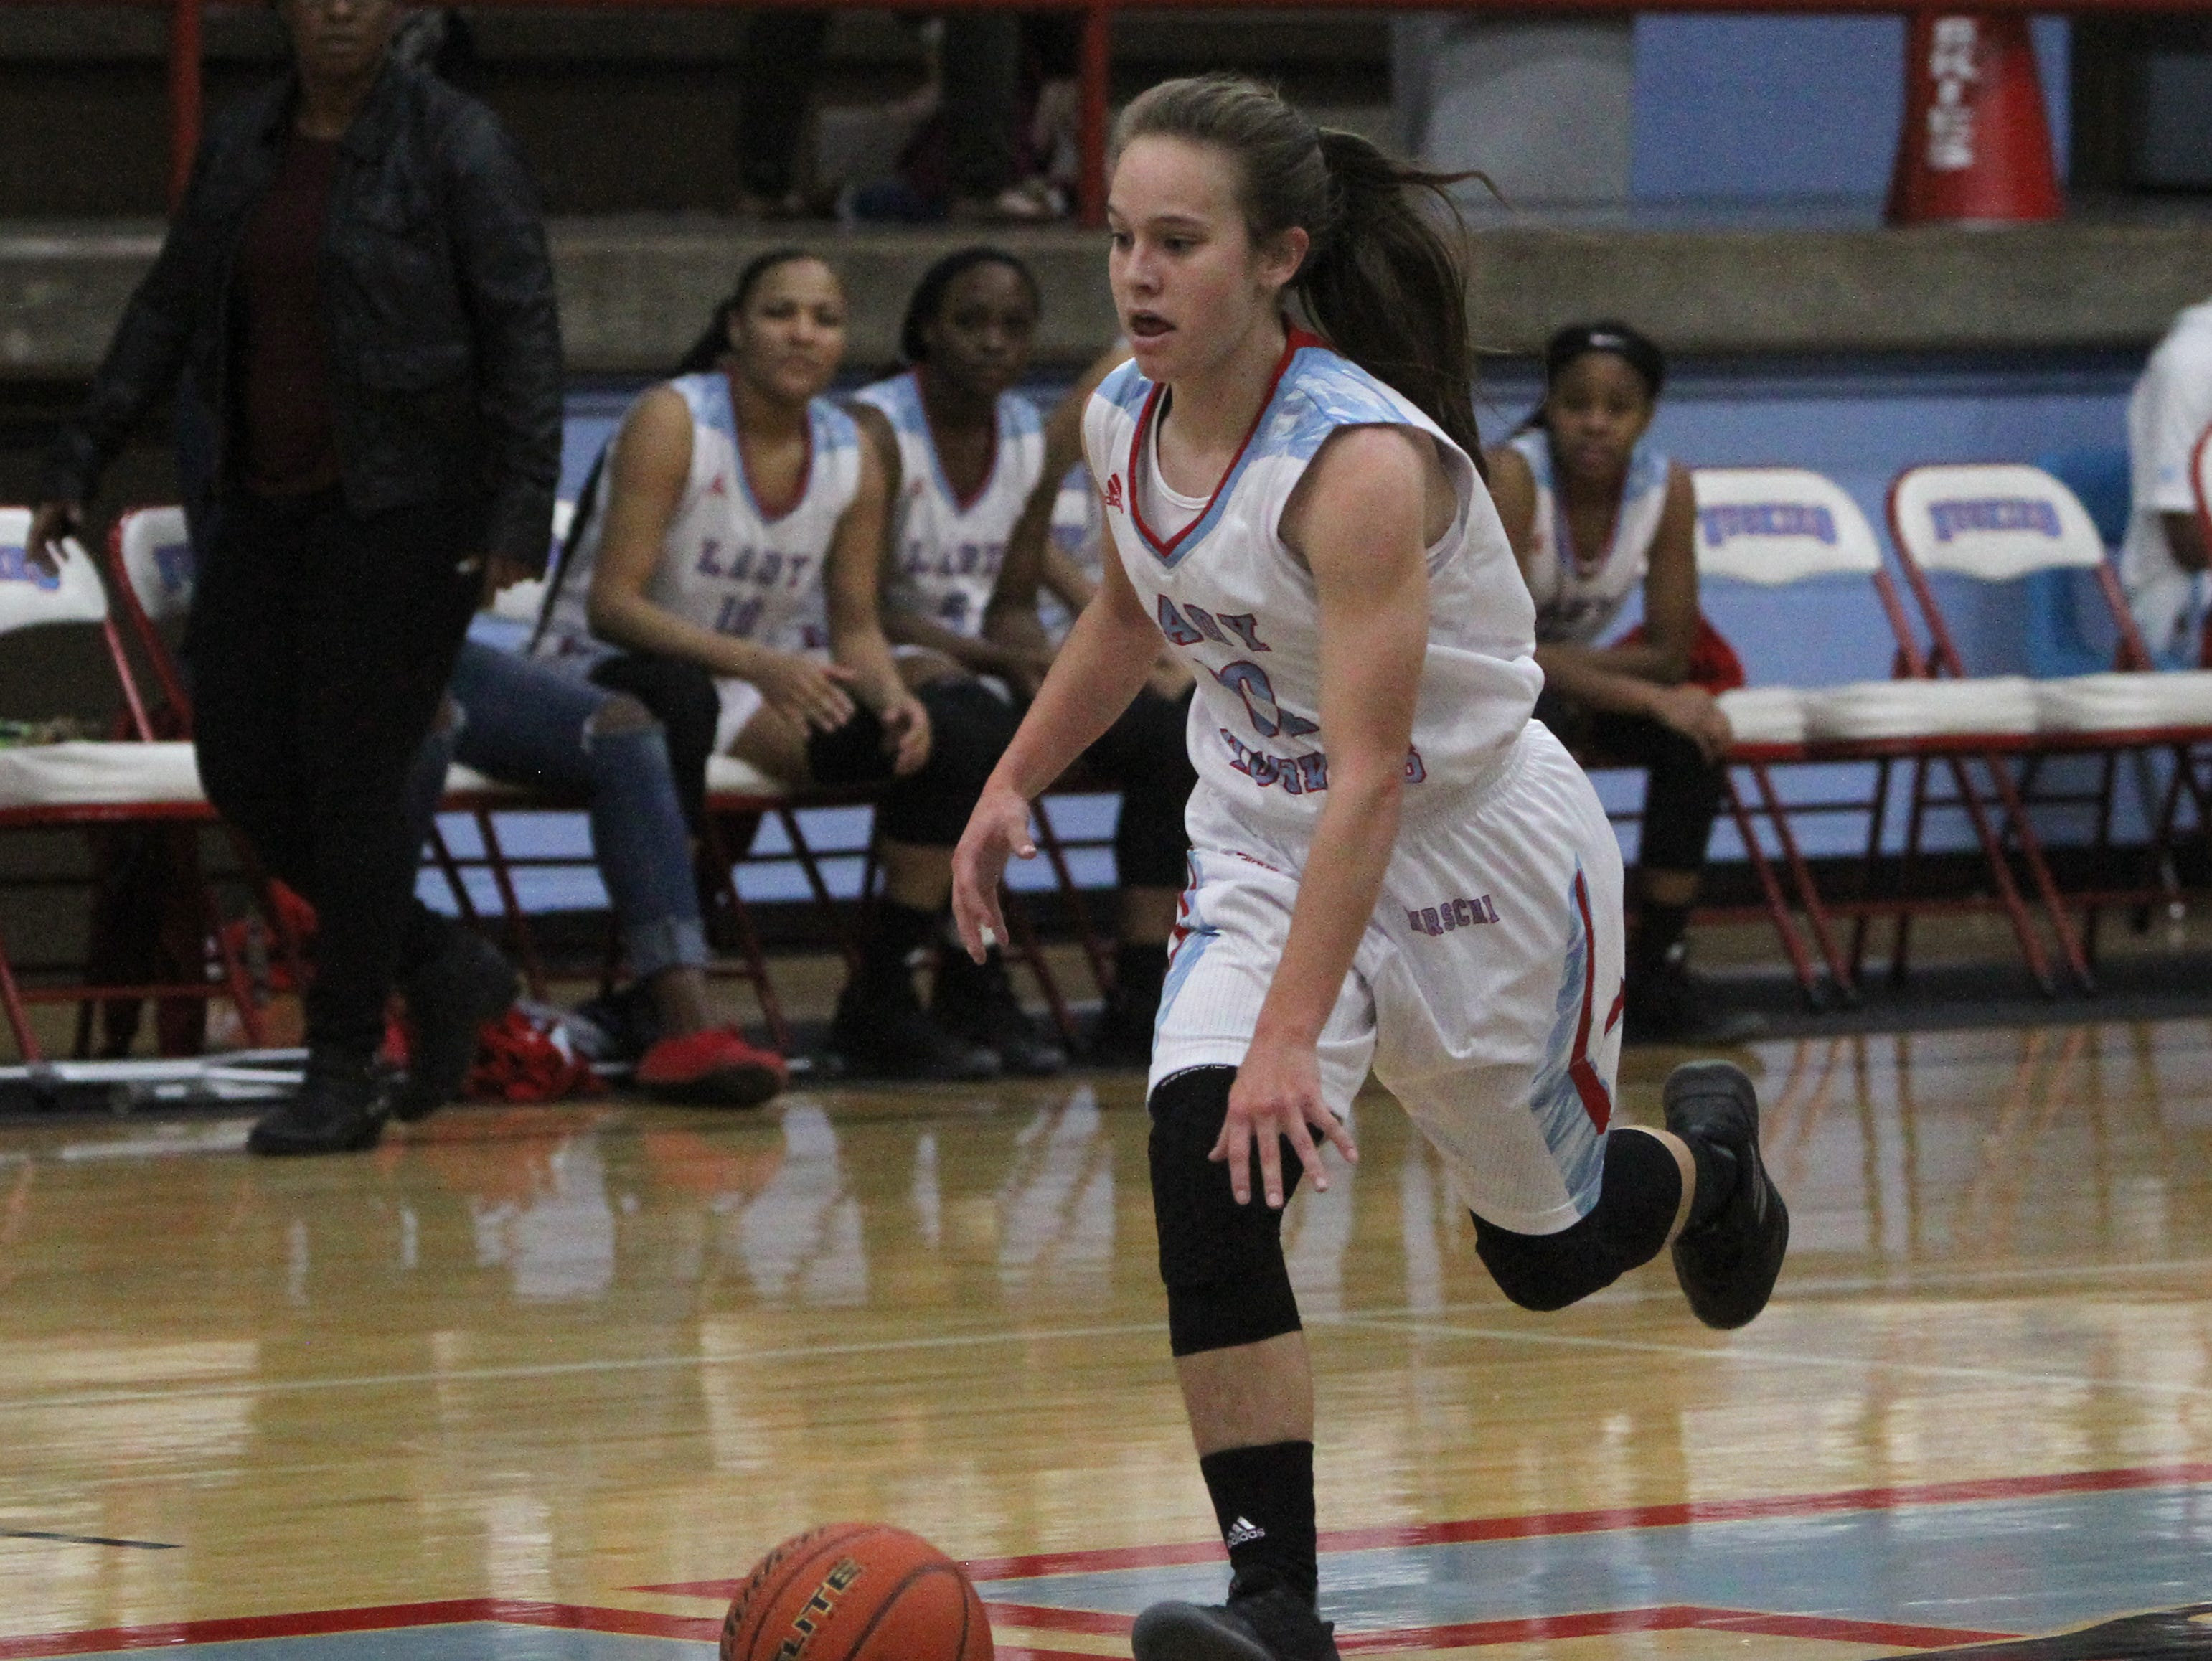 Hirschi's Michinsi Montoya dribbles in the game against Rider Tuesday, Dec. 11, 2018, at Hirschi. The Lady Huskies defeated the Lady Raiders 51-35.